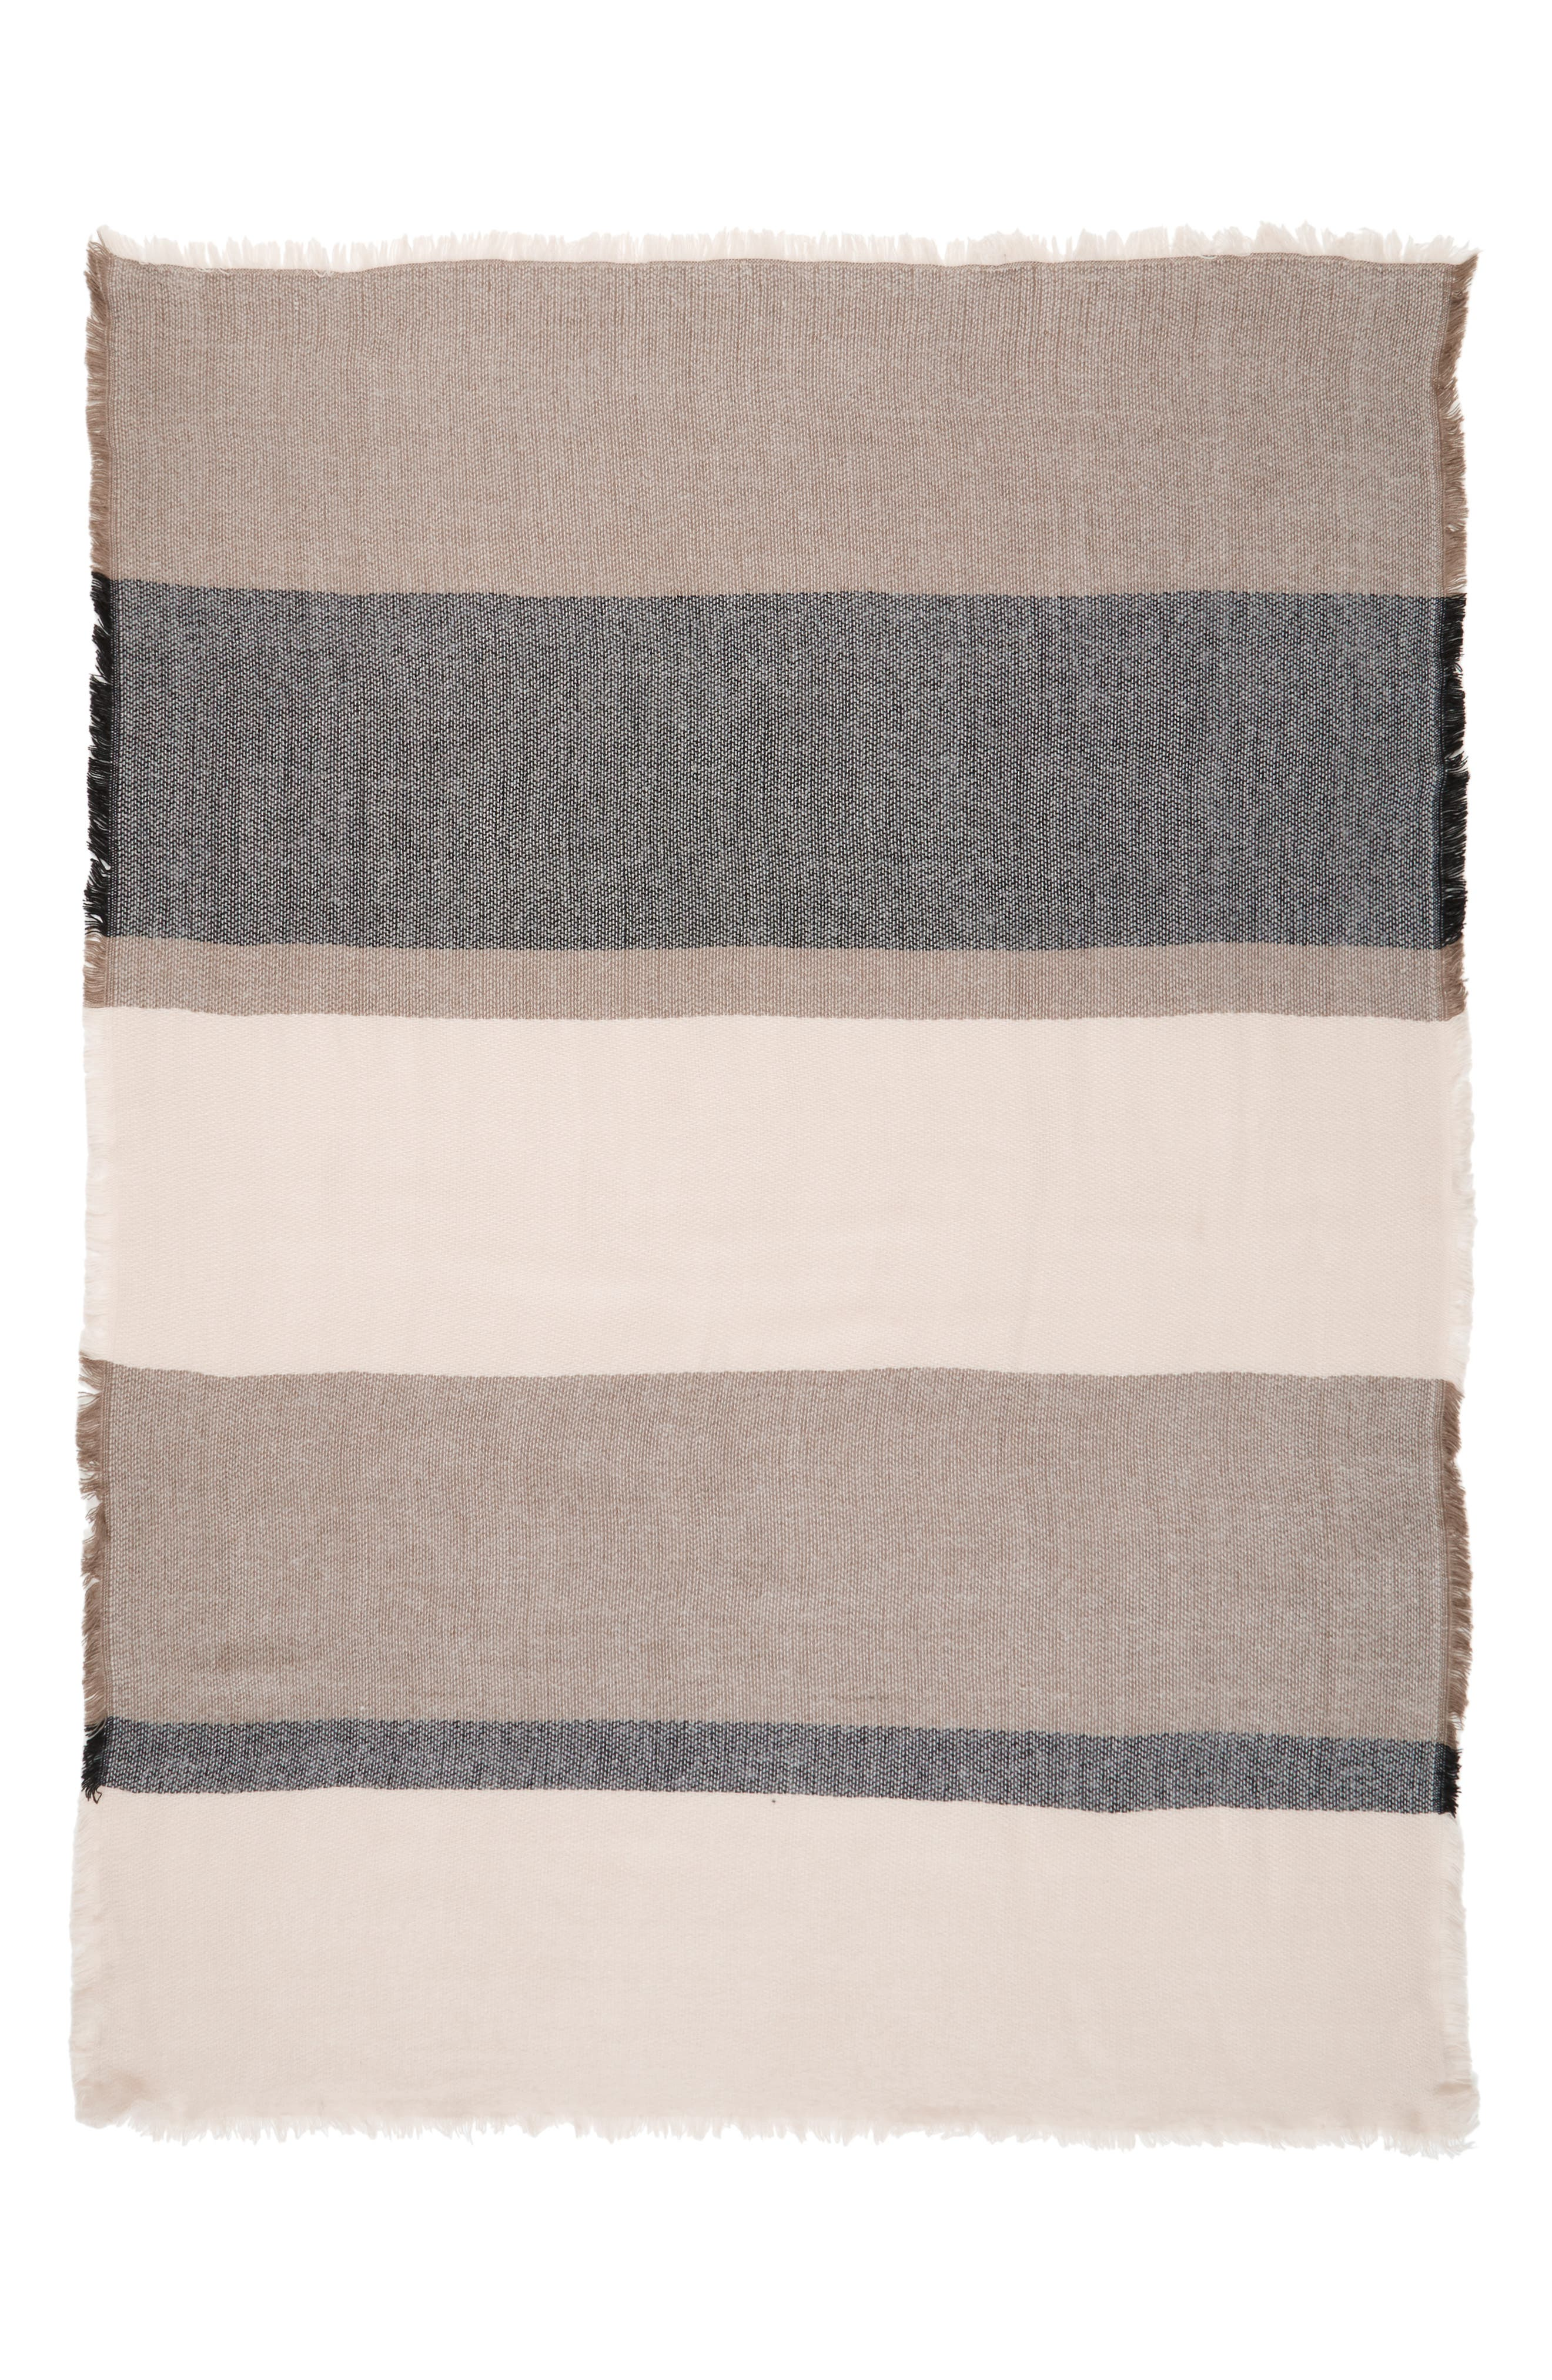 Accessory Collective Stripe Scarf,                             Alternate thumbnail 2, color,                             020